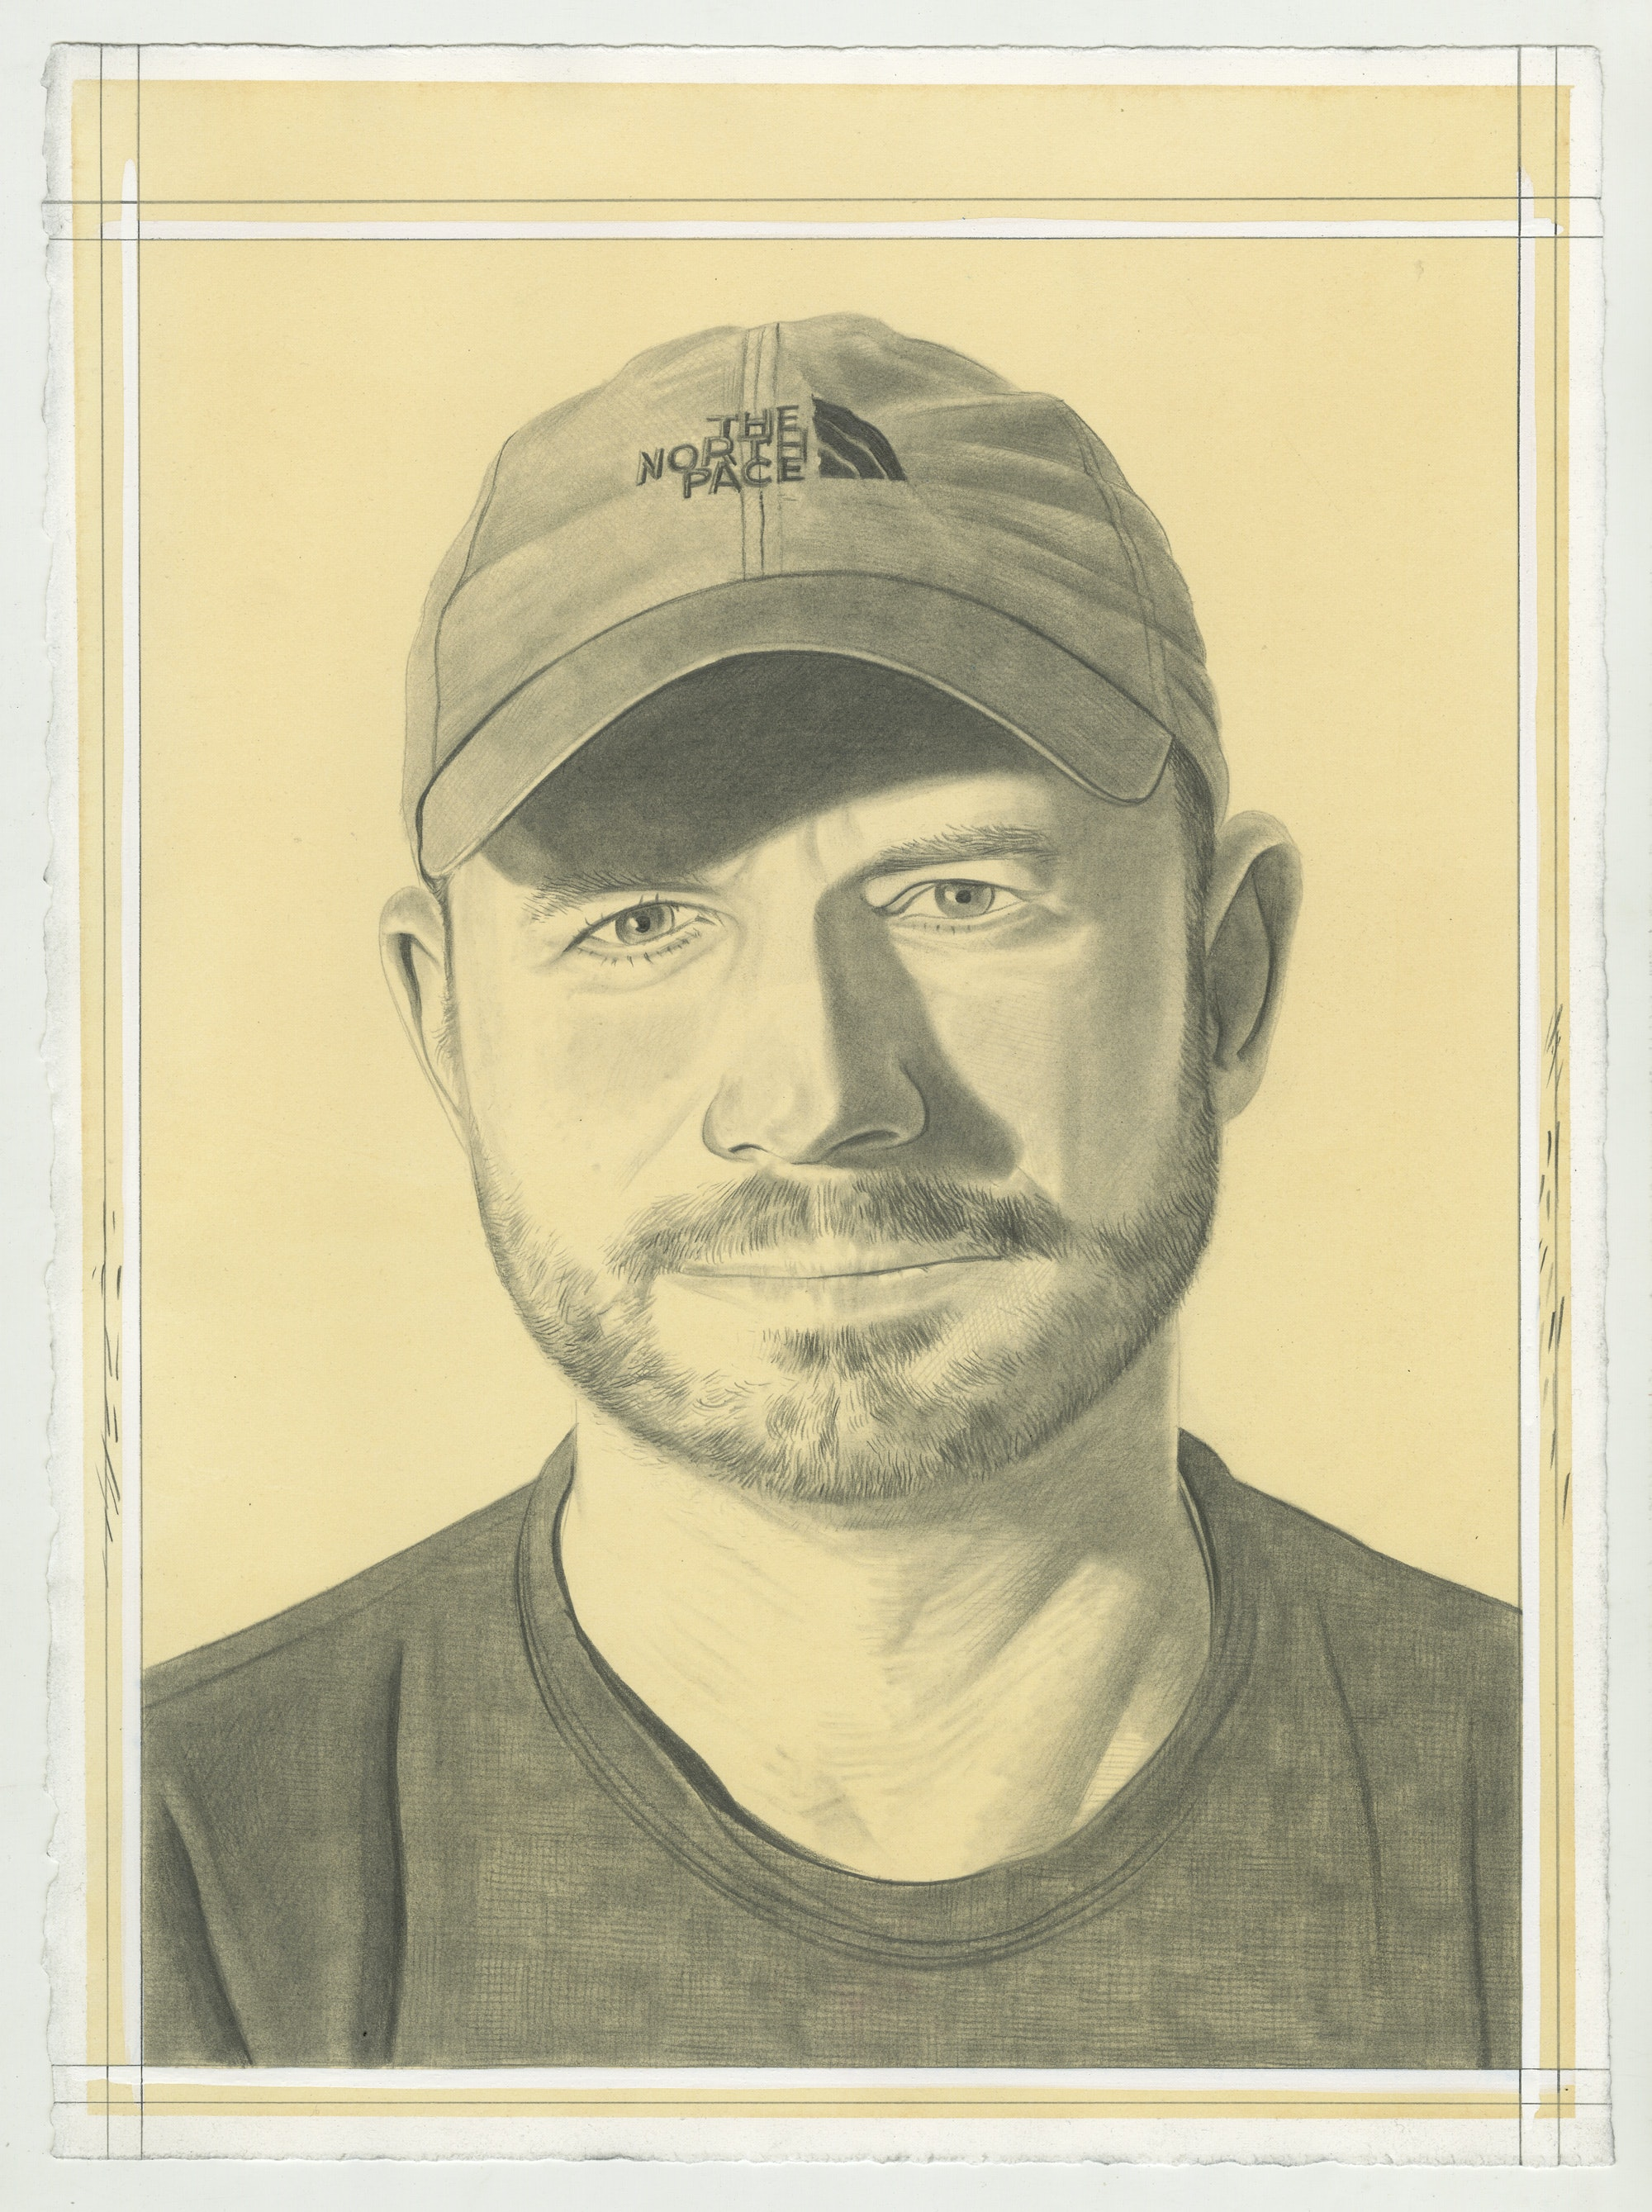 Portrait of Justin Brice Guariglia. Pencil on Paper by Phong Bui.